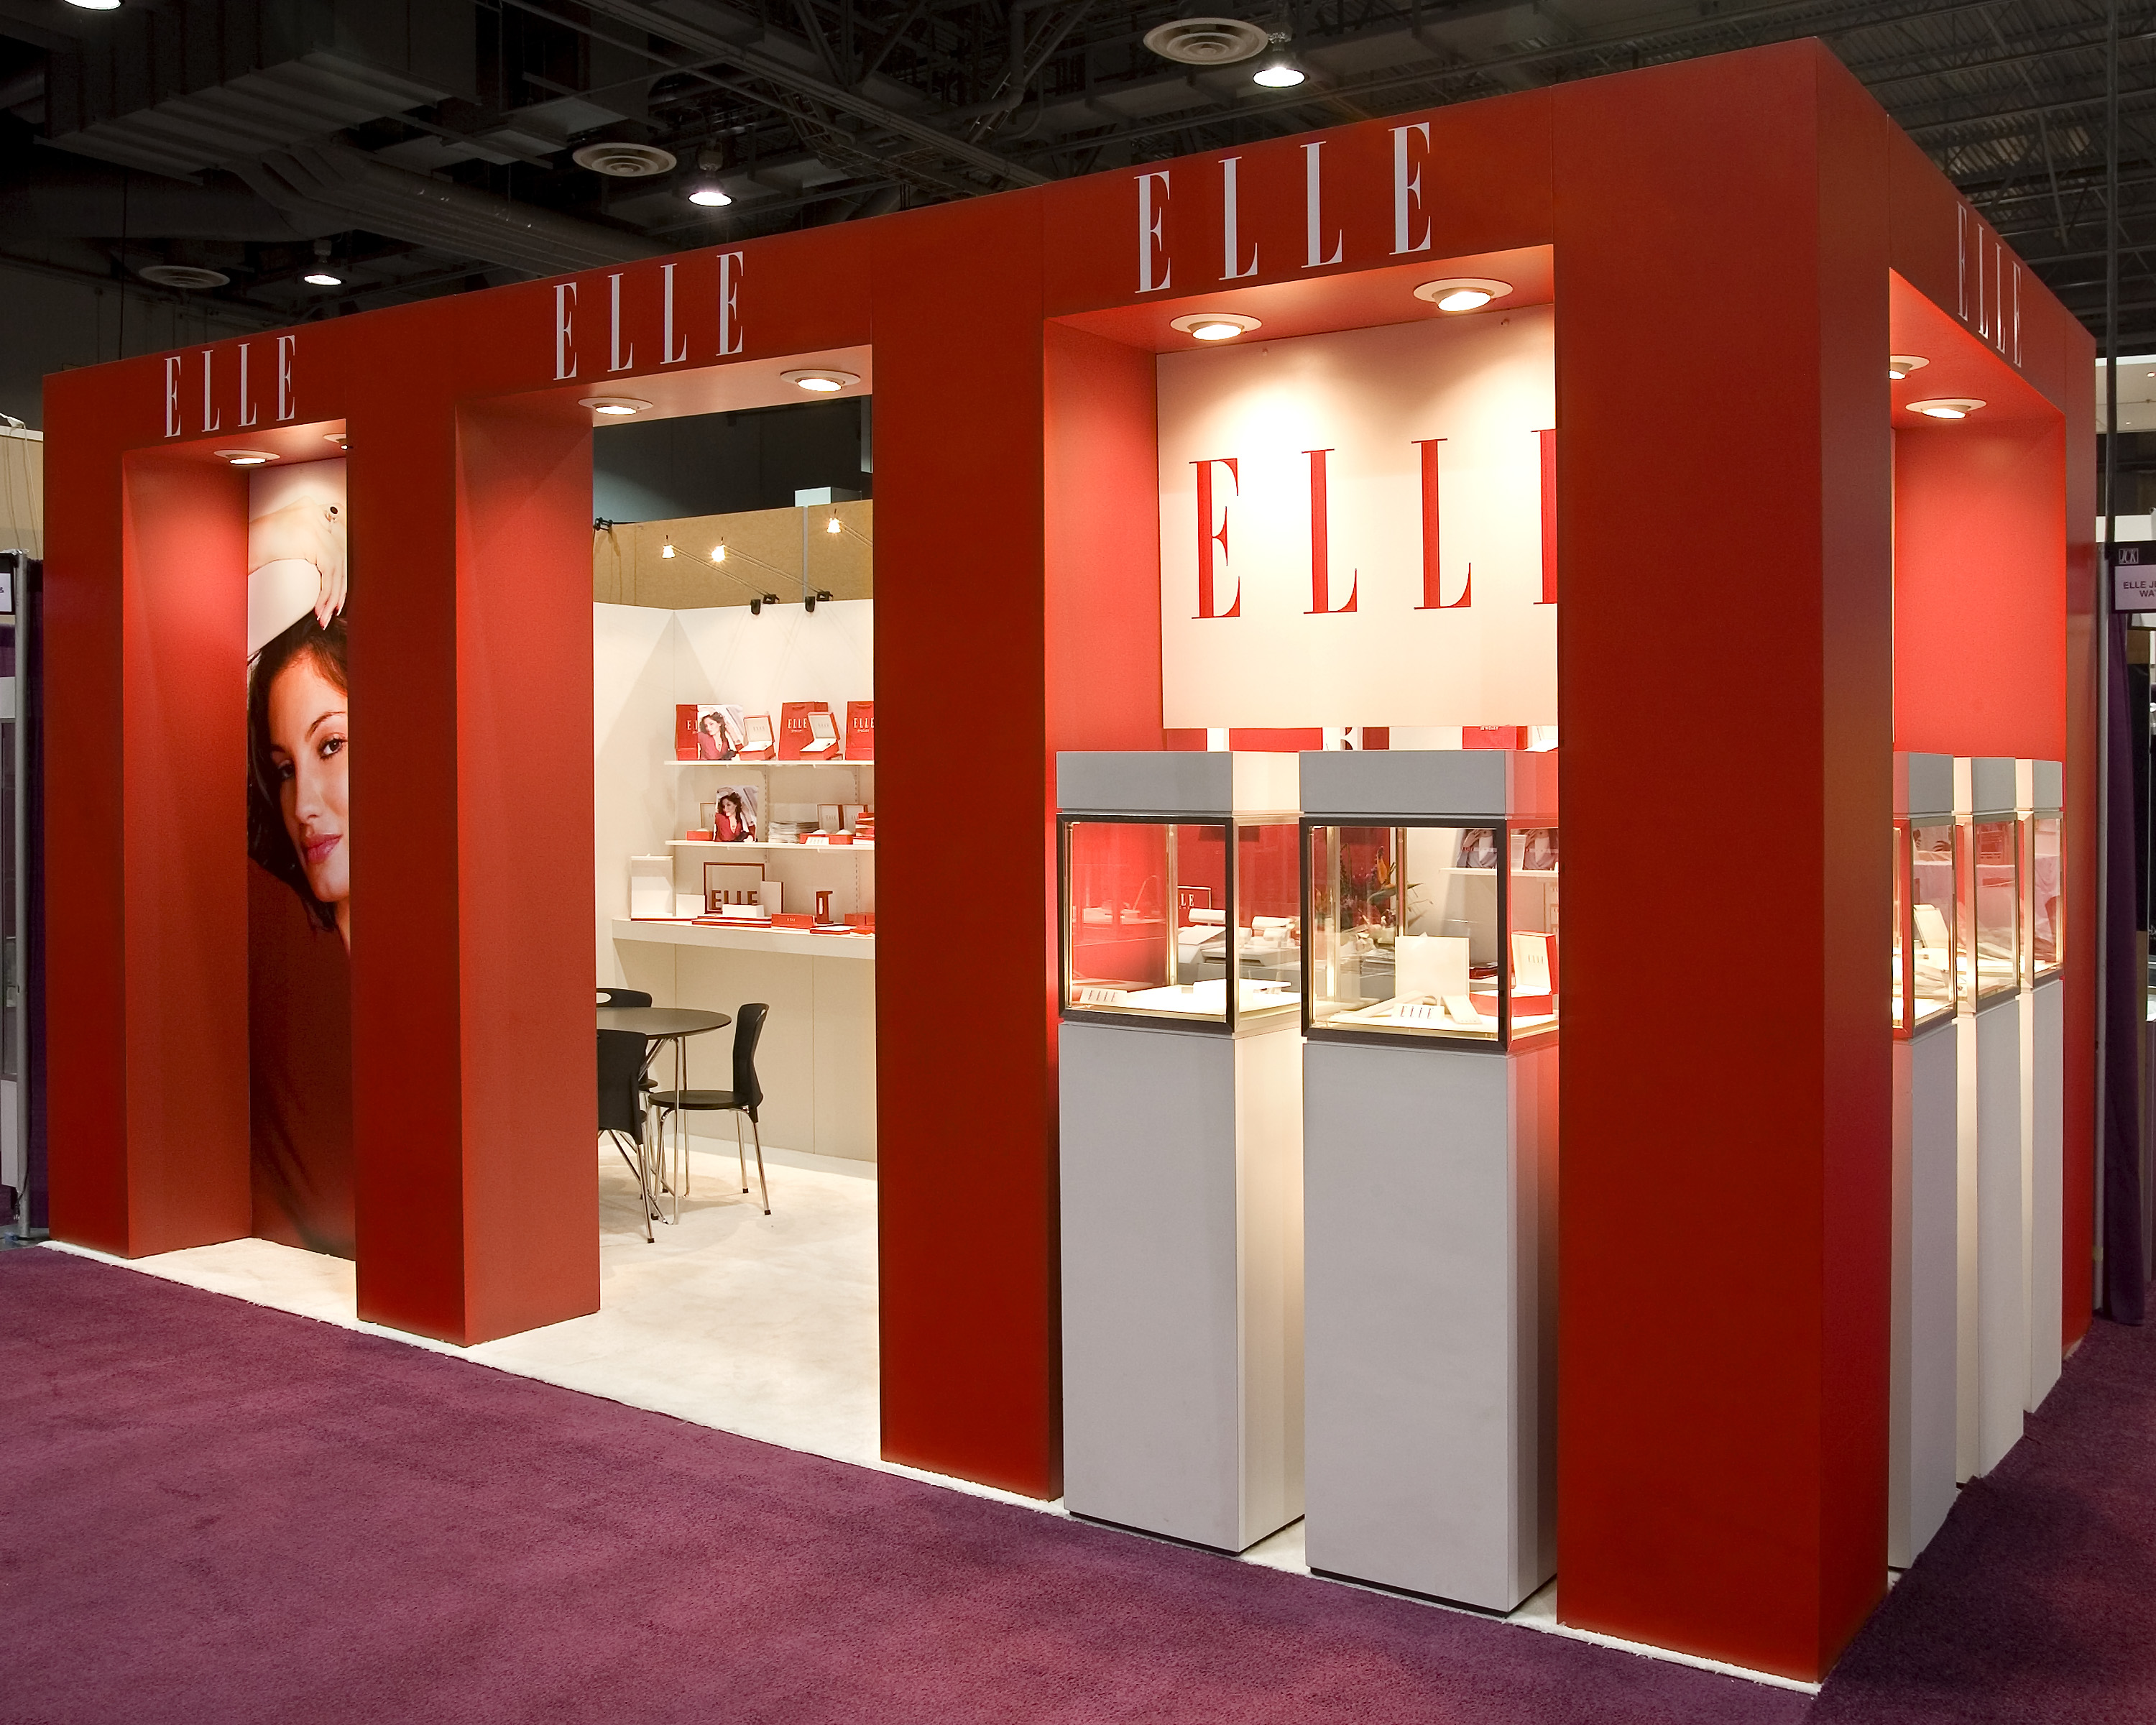 Exhibition Booth Design Award : Xibit solutions wins trade show booth design award at